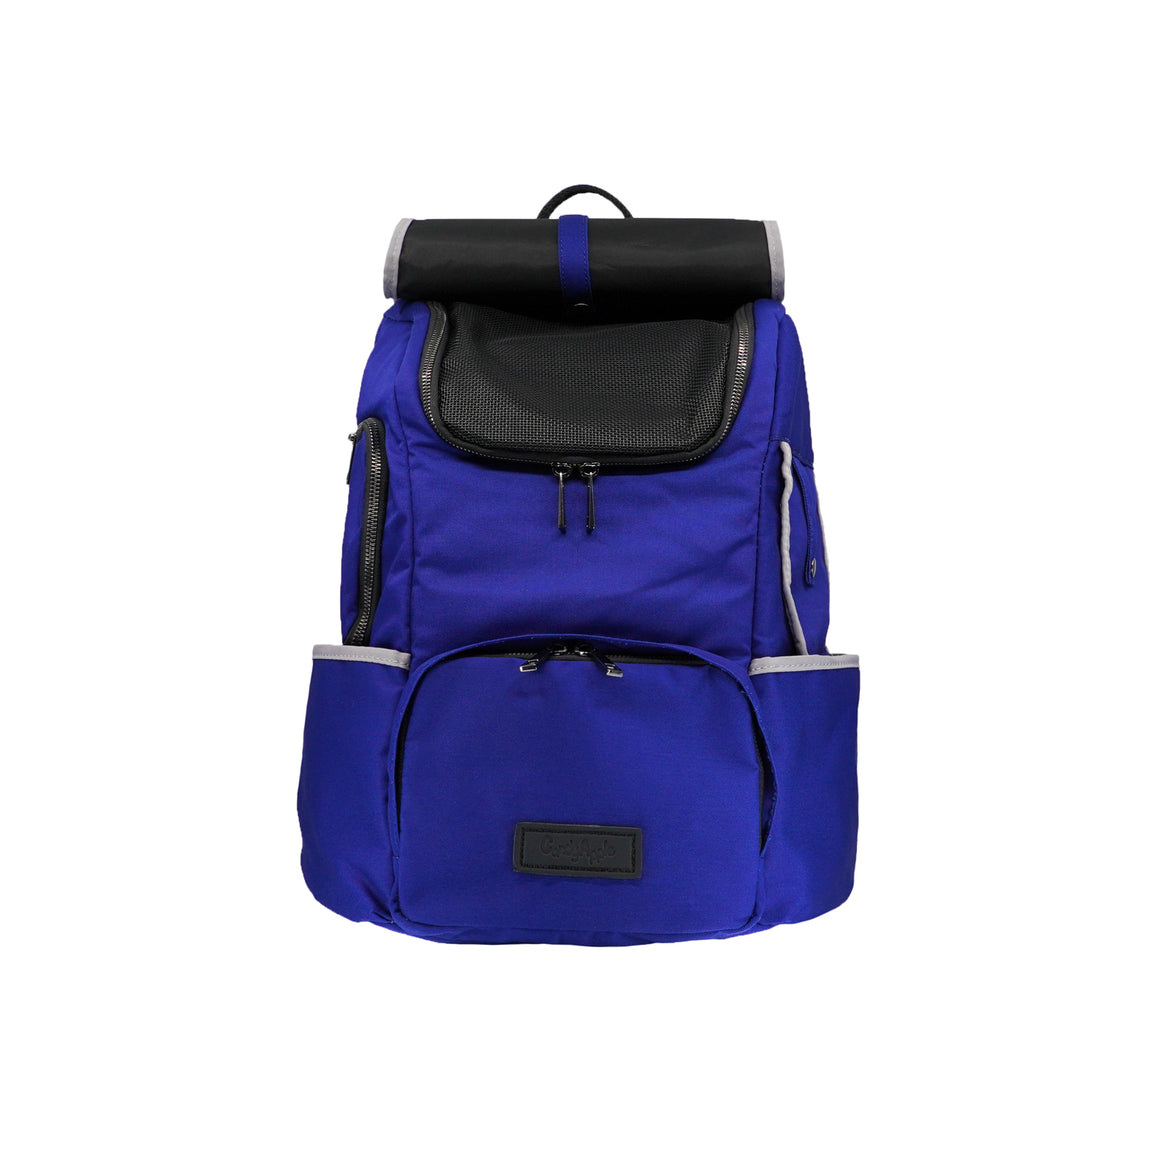 BIEWER BACKPACK CARRIER IN ROYAL BLUE - Candy Apple Ltd